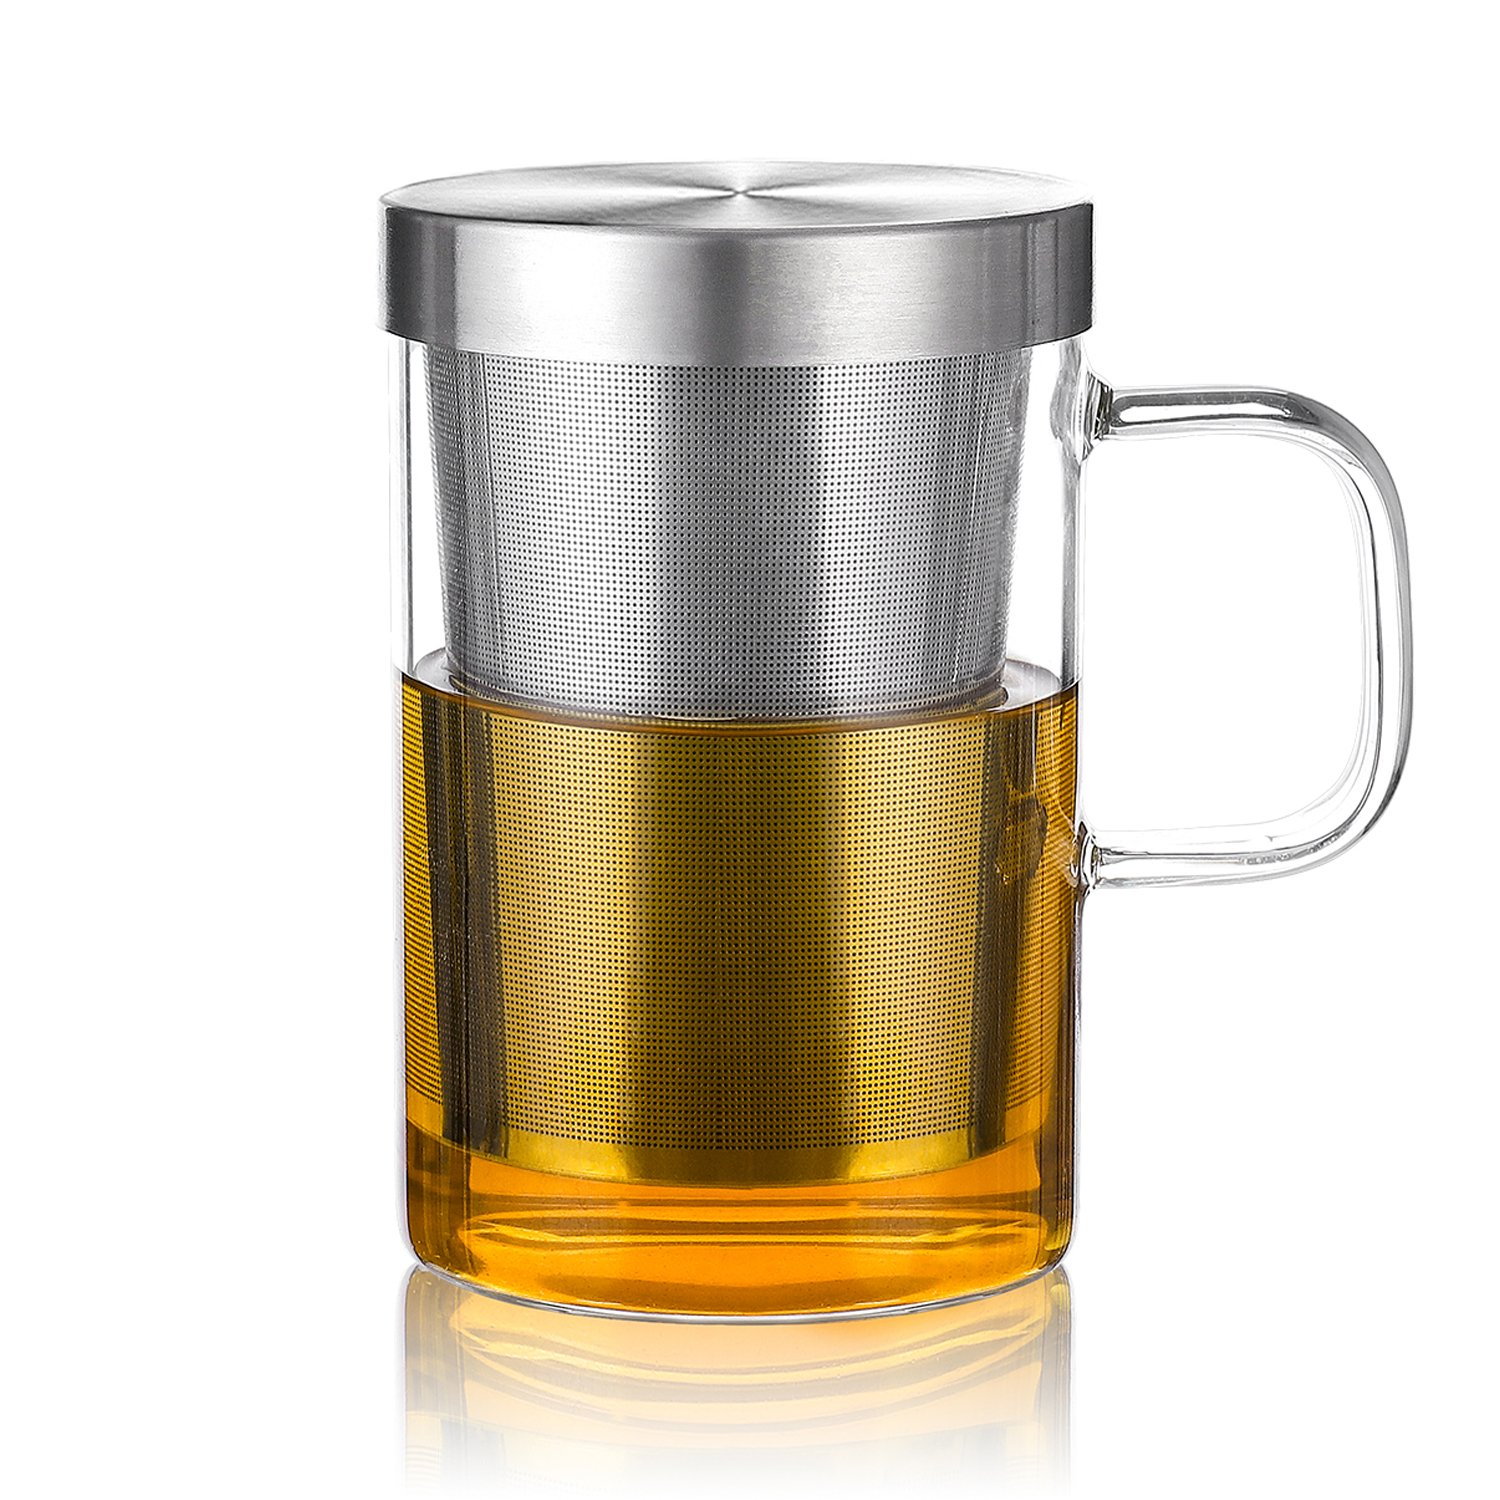 Teocera Tea Brewing Cup with Tea Infuser & Strainer - Clear Glass Tea Mug Cup with Handle, Stainless Steel Infuser and Lip, Perfect for Tea Lovers | Mesh Filter for Brewing Loose Leaf